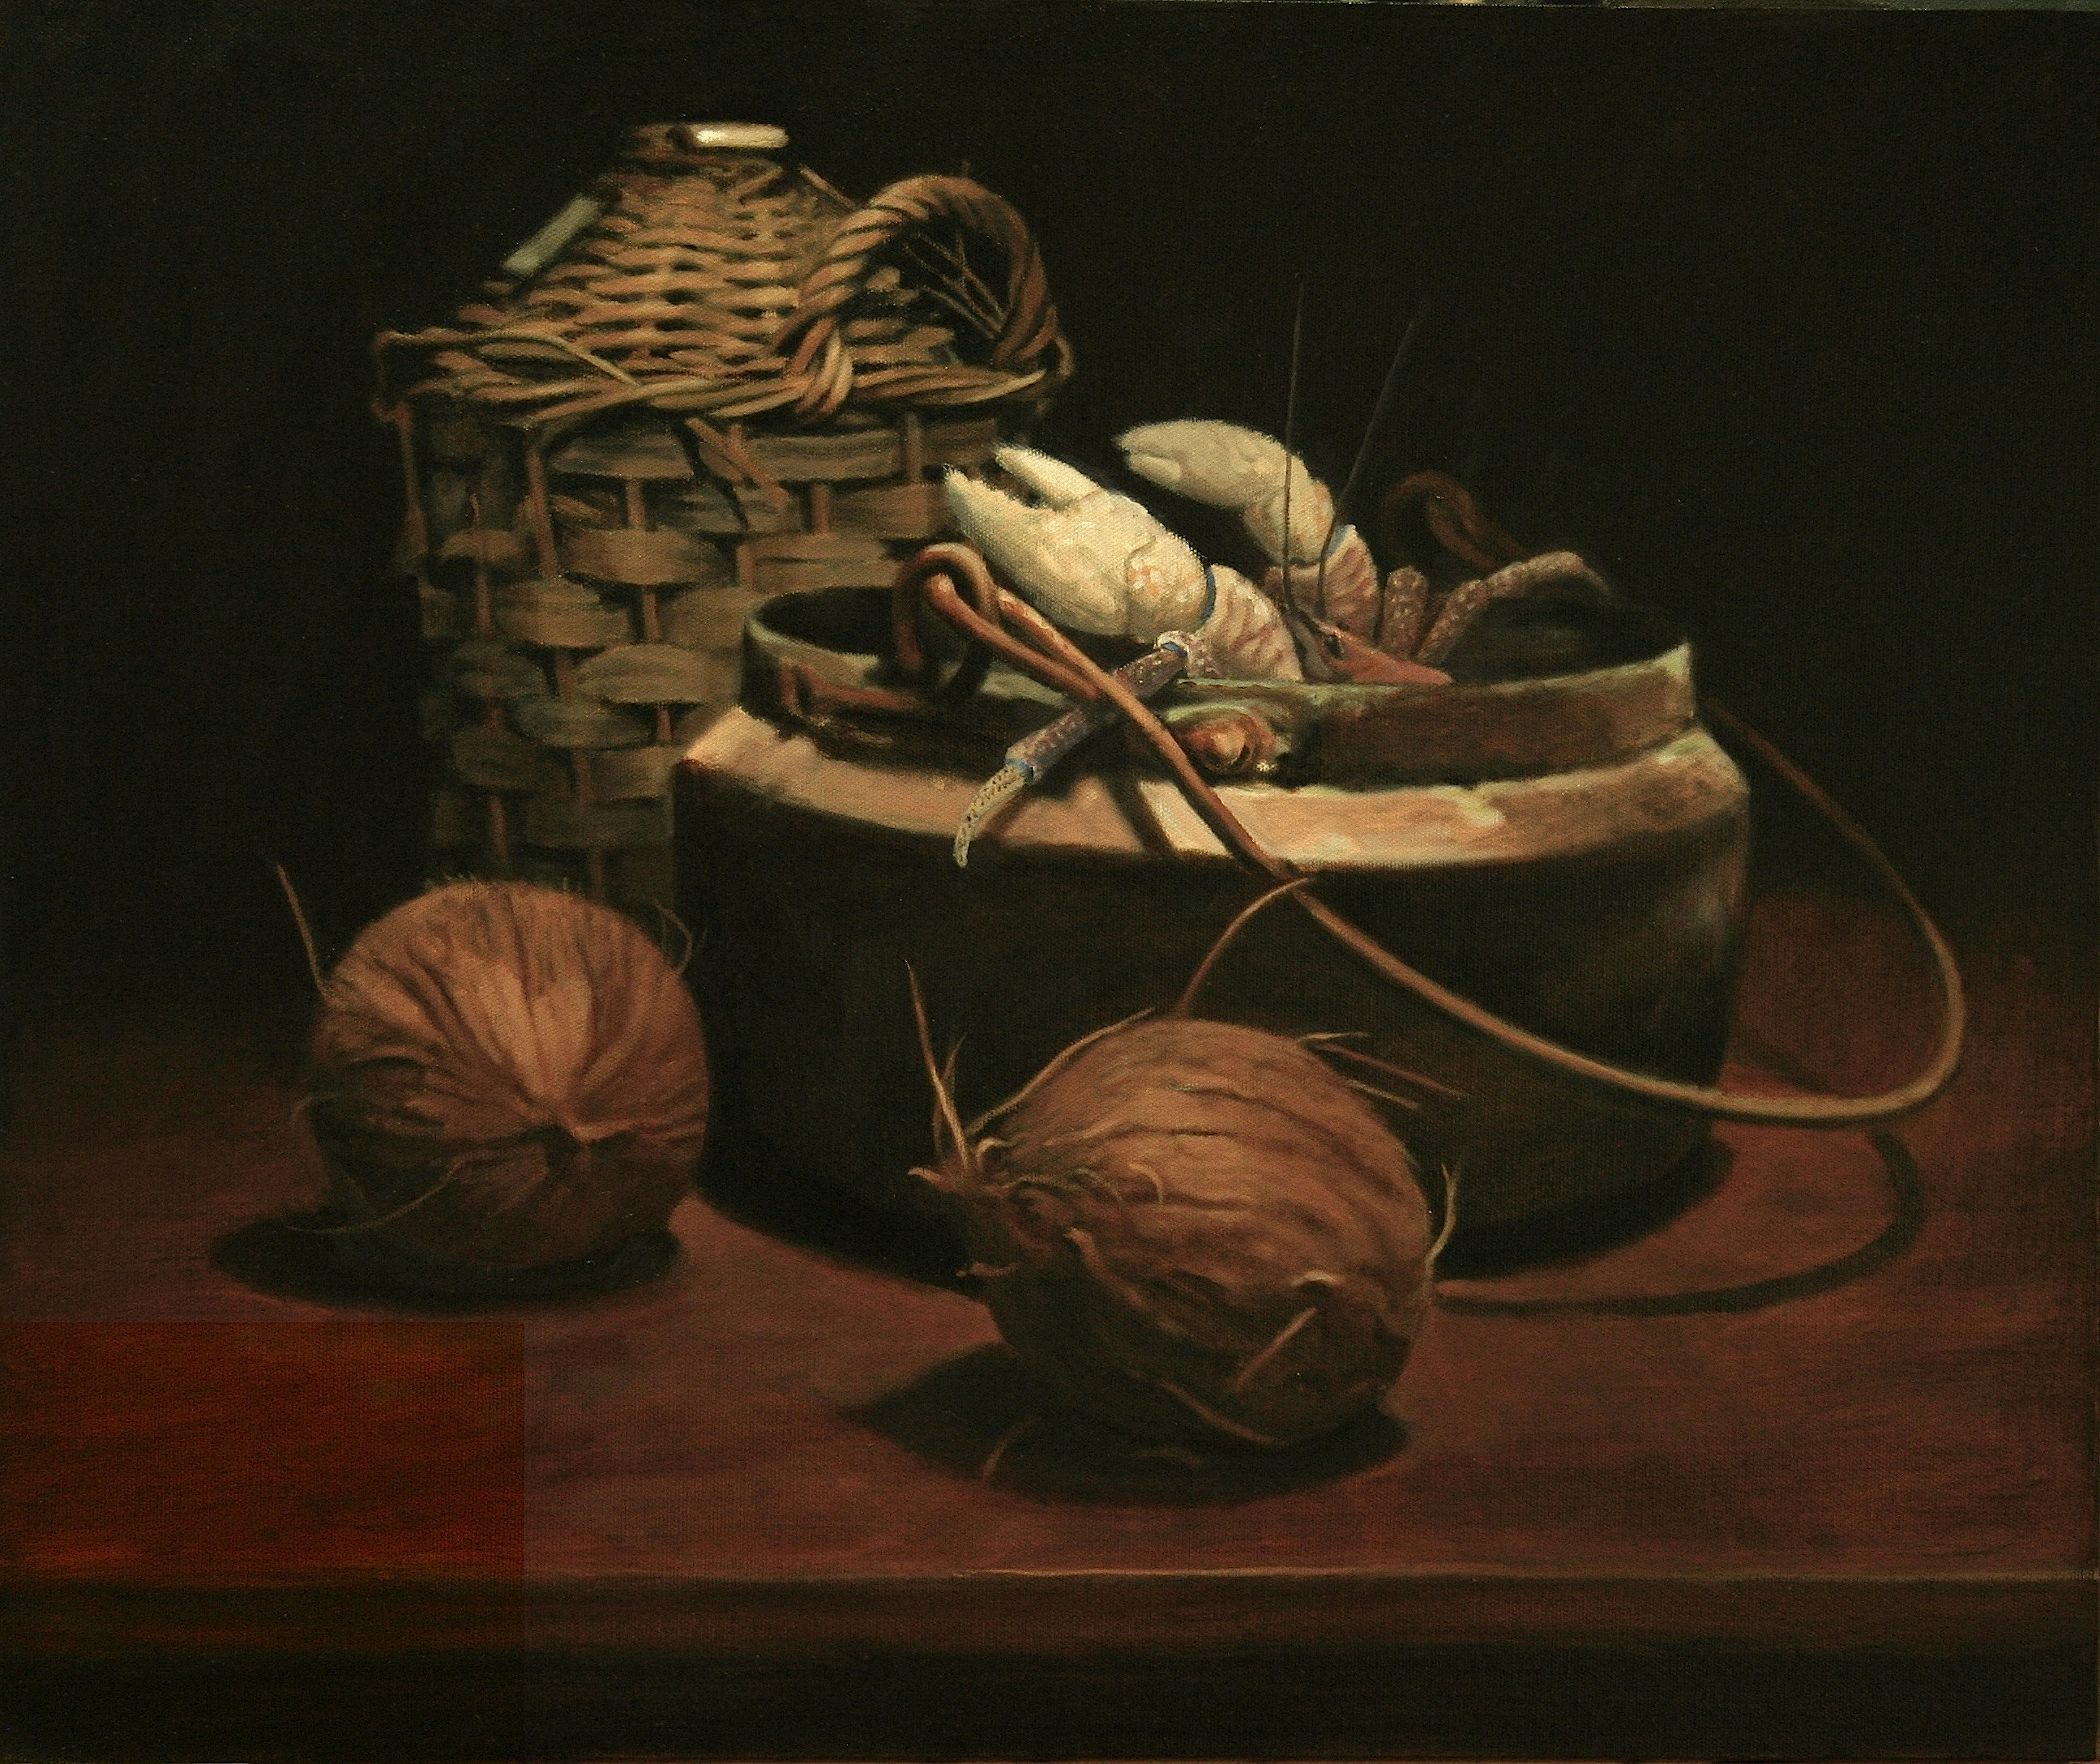 12Still Life with Coconut Crab 2009 Oil on canvas 50x60cm $5,000